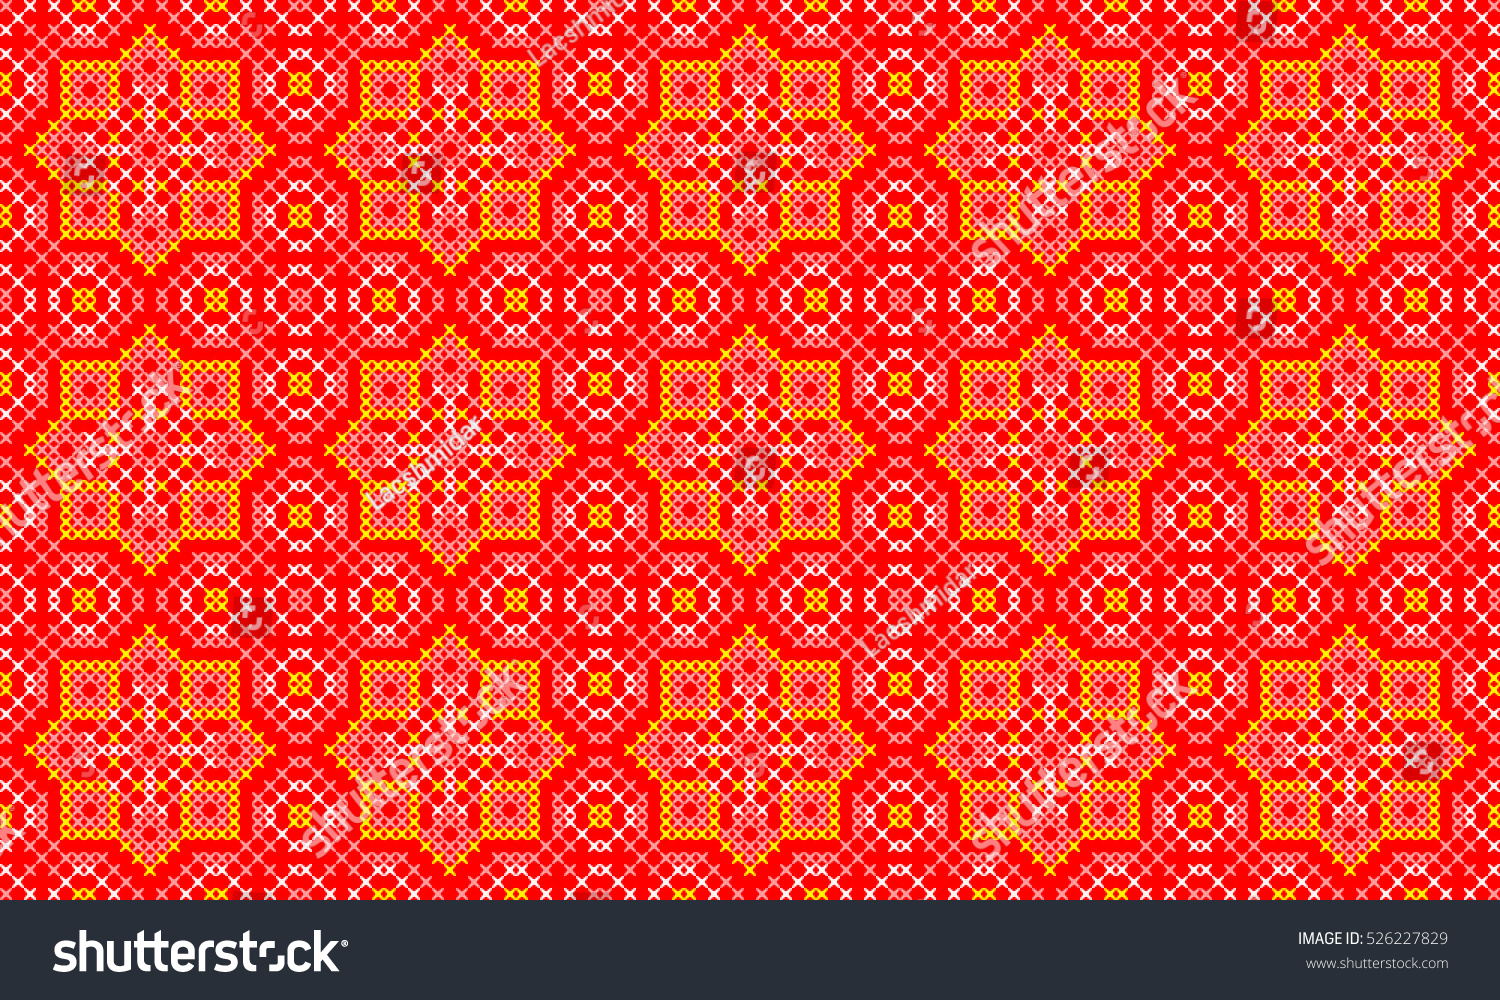 Festive Ethnic Seamless Pattern Jacquard Tapestry Embroidered Stock